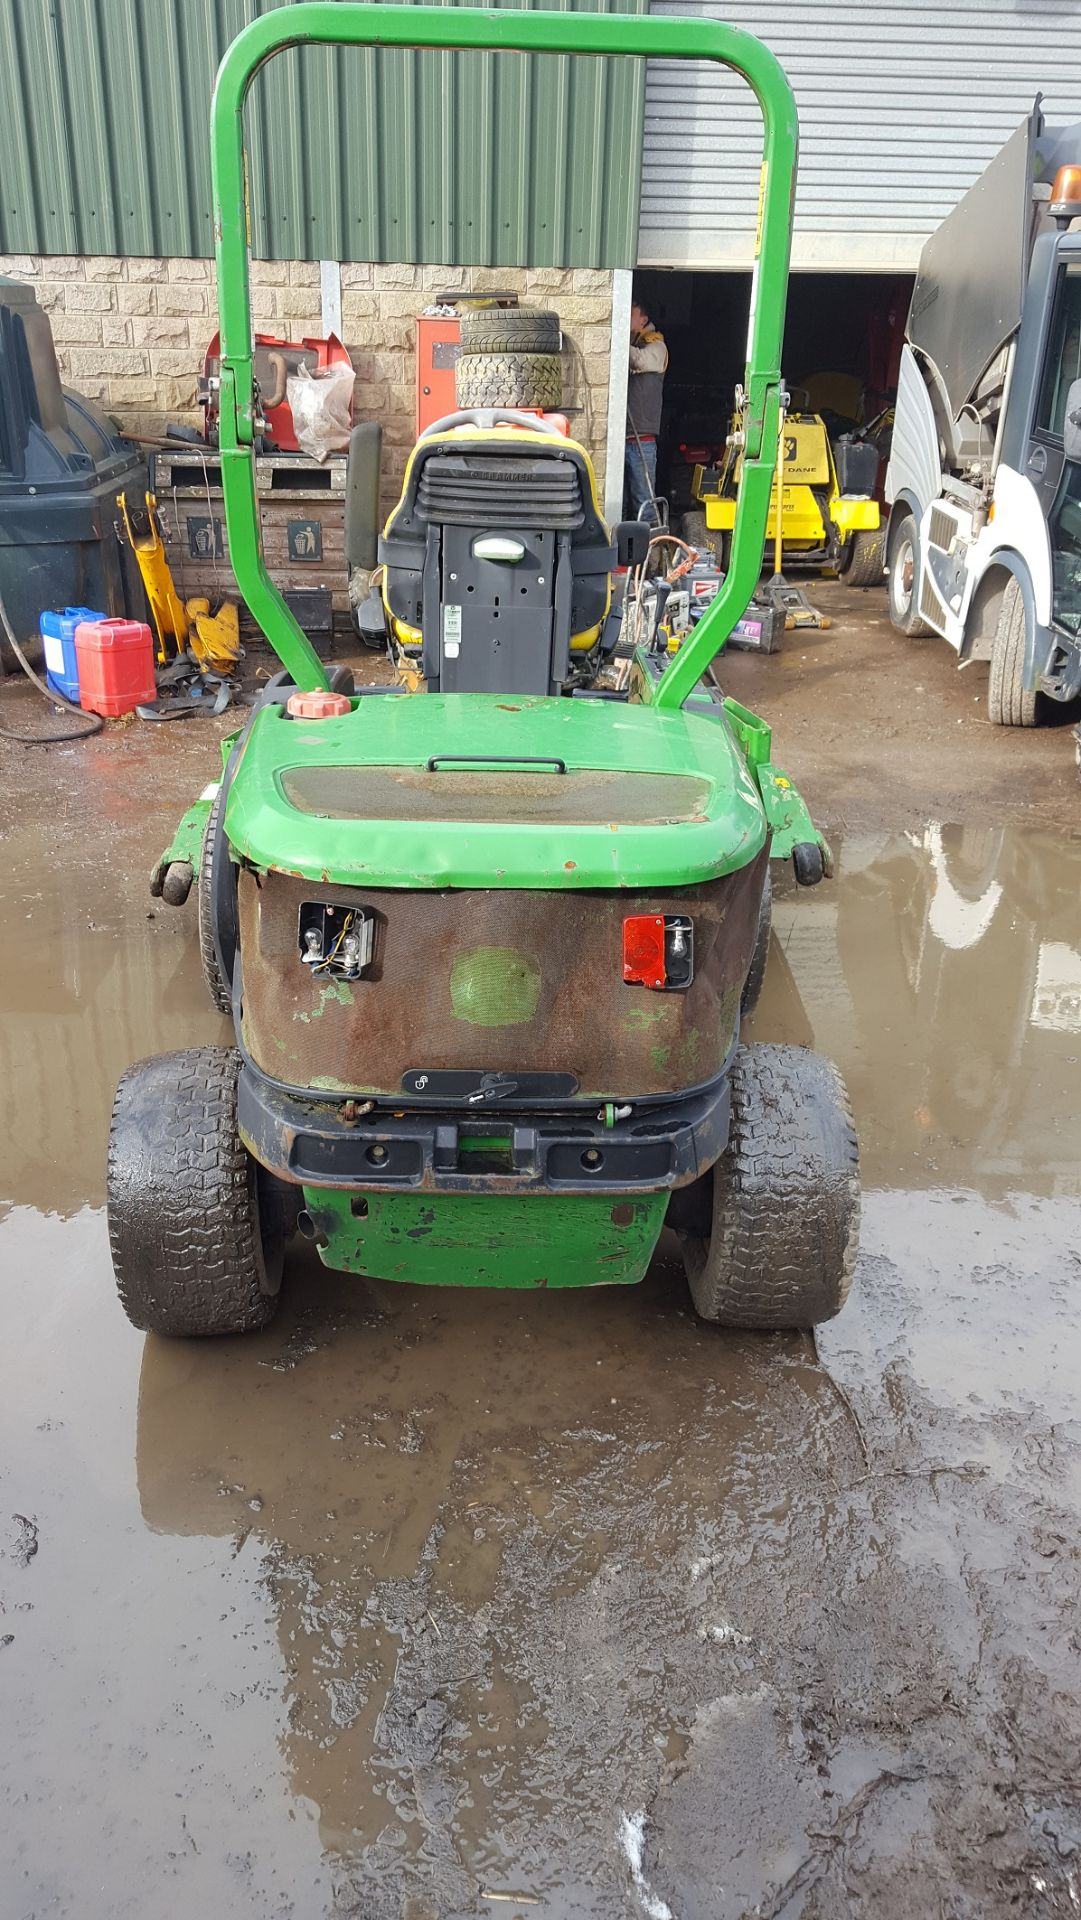 2006 JOHN DEERE 1545 RIDE ON LAWN MOWER, EX GATESHEAD COUNCIL *PLUS VAT* - Image 3 of 8